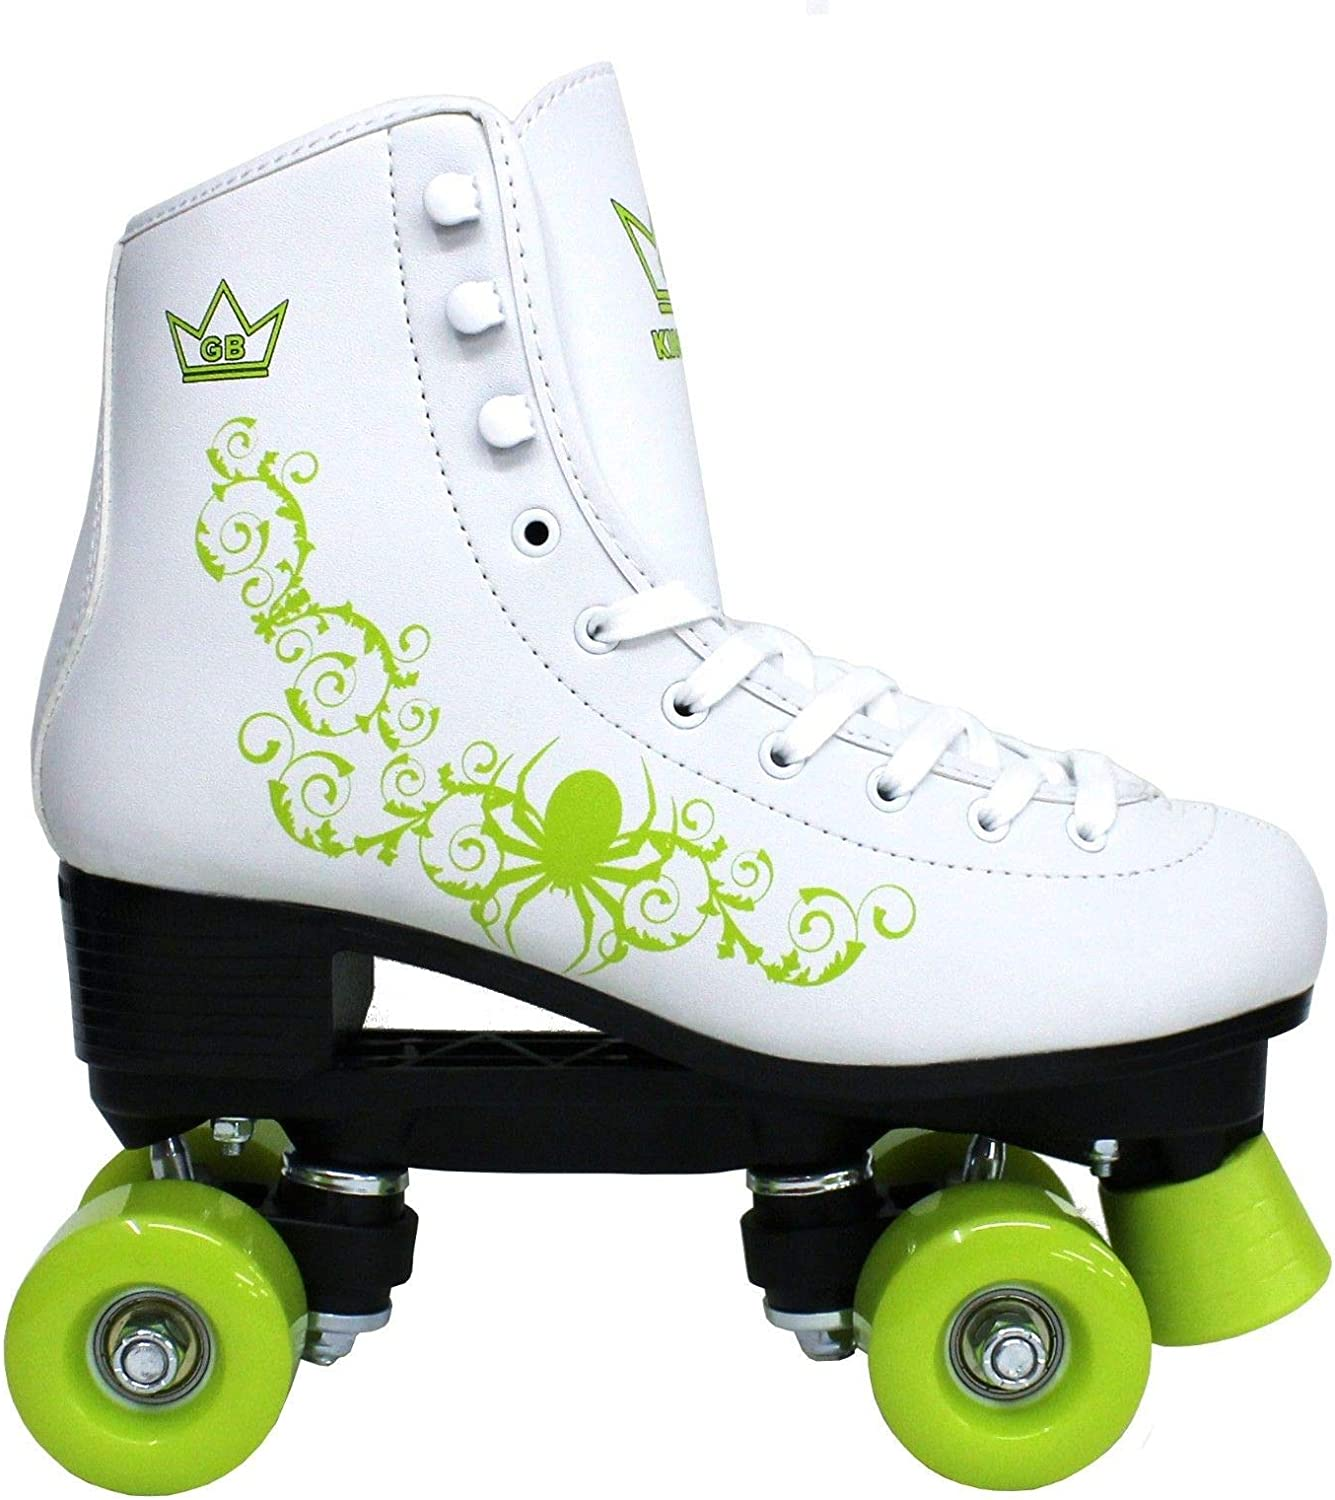 Kingdom GB Vector V2 Quad Wheels Roller Skates / UK